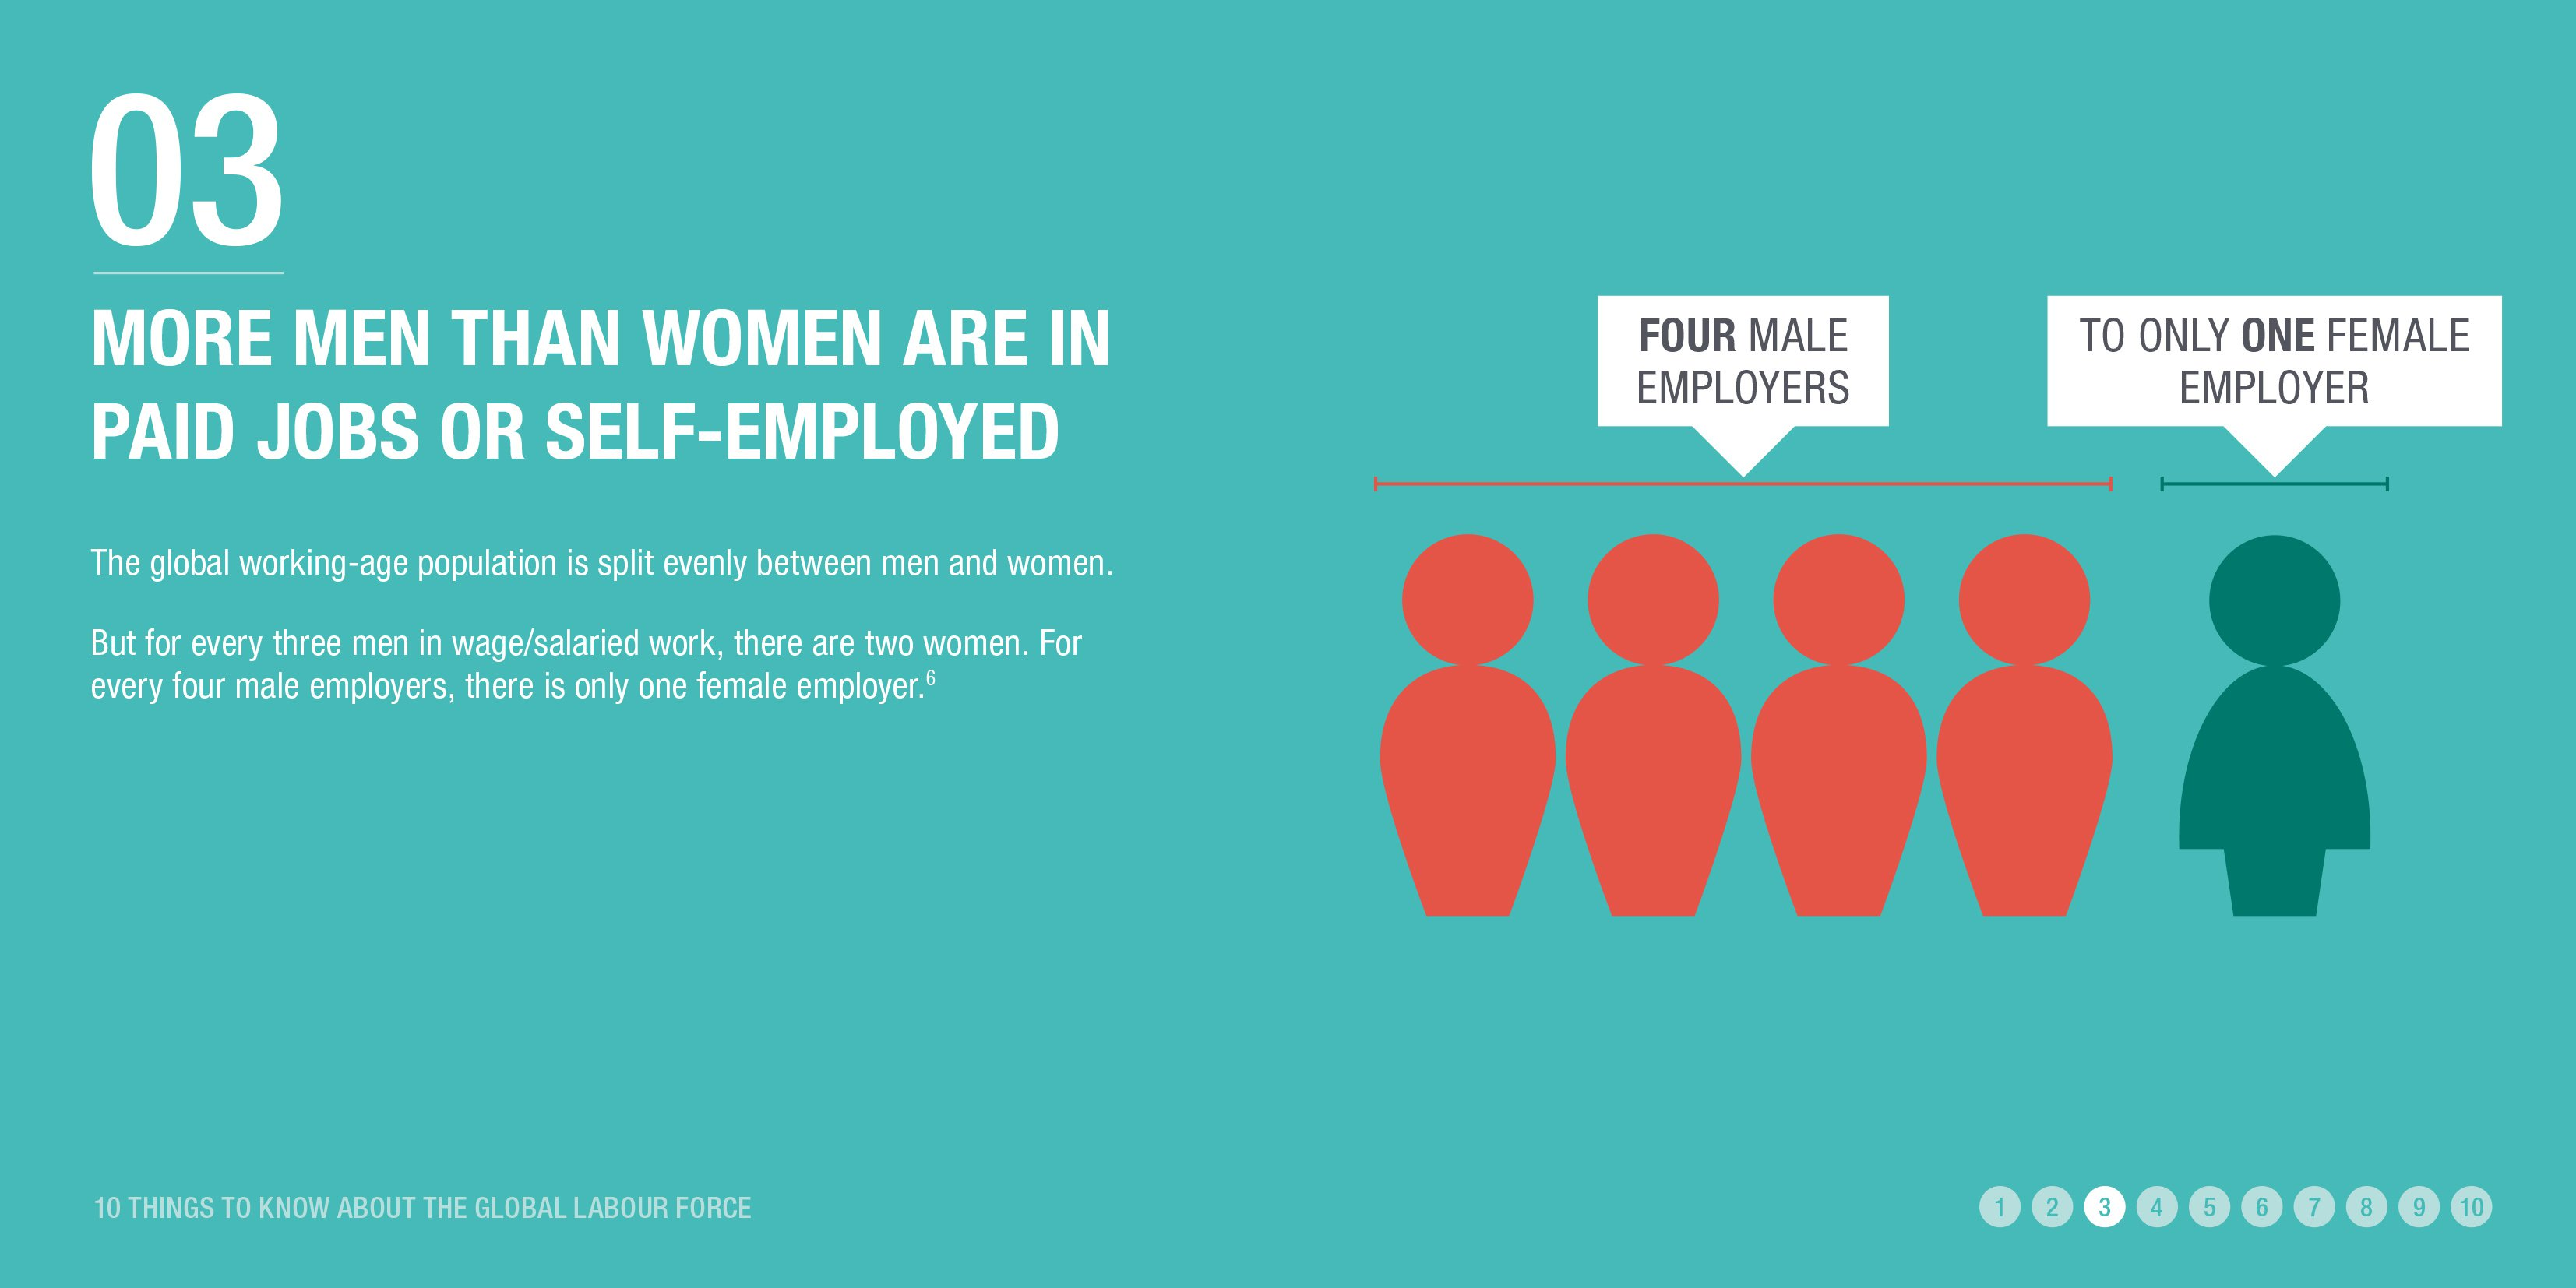 More men than women are in paid jobs or self-employed